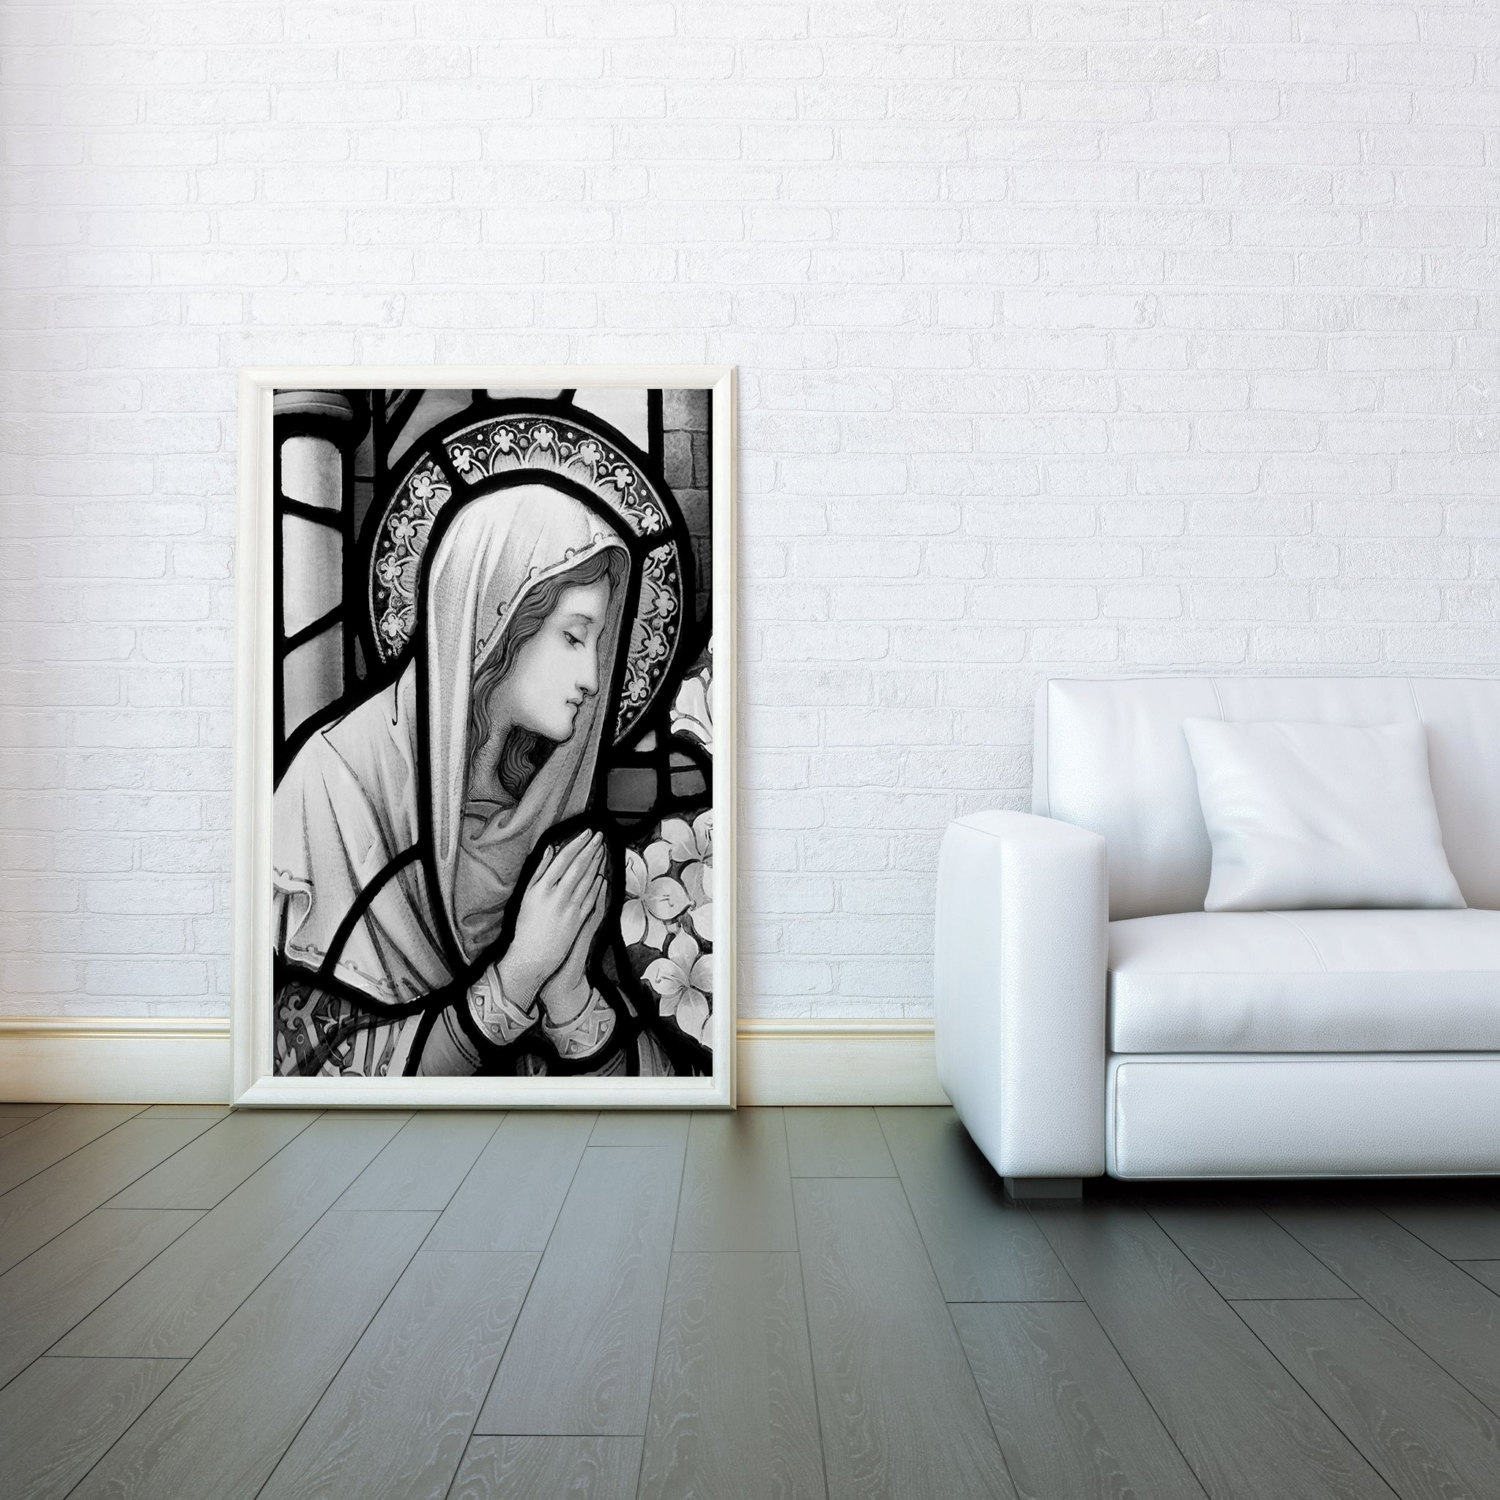 Black Jesus Wall Art: Mary Mother Of Jesus Decorative Arts Prints & Posters Wall